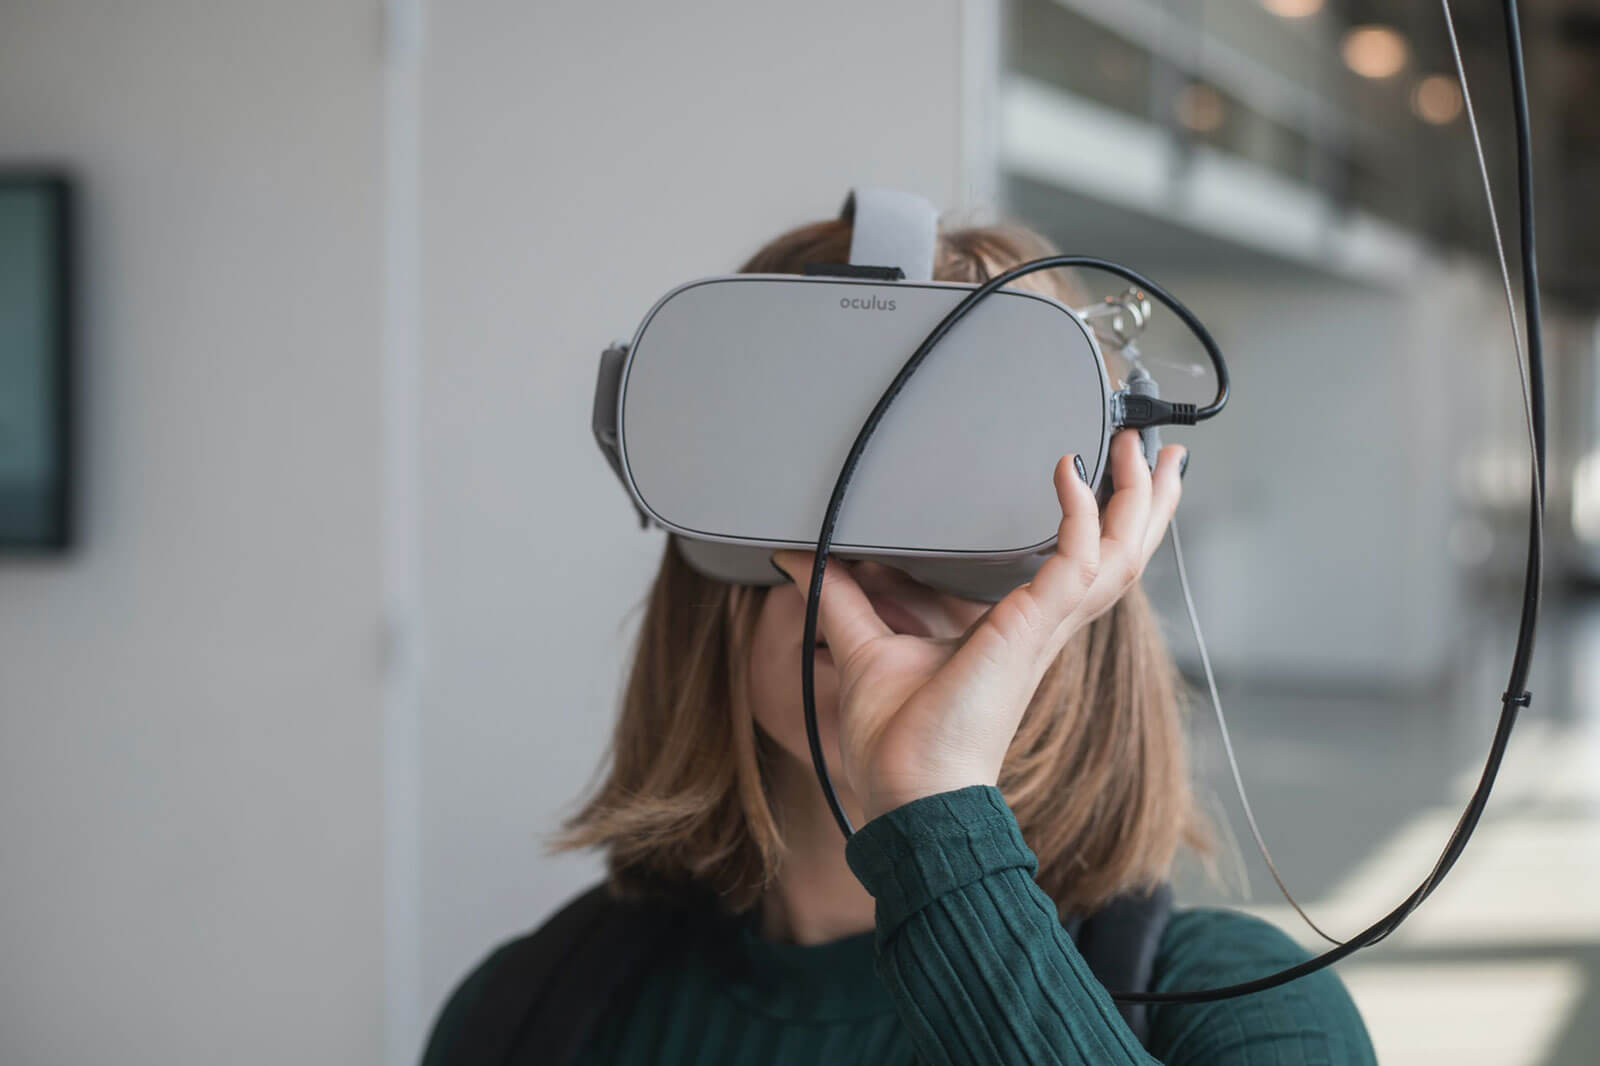 Top 7 Surprising Facts About The VR Technology